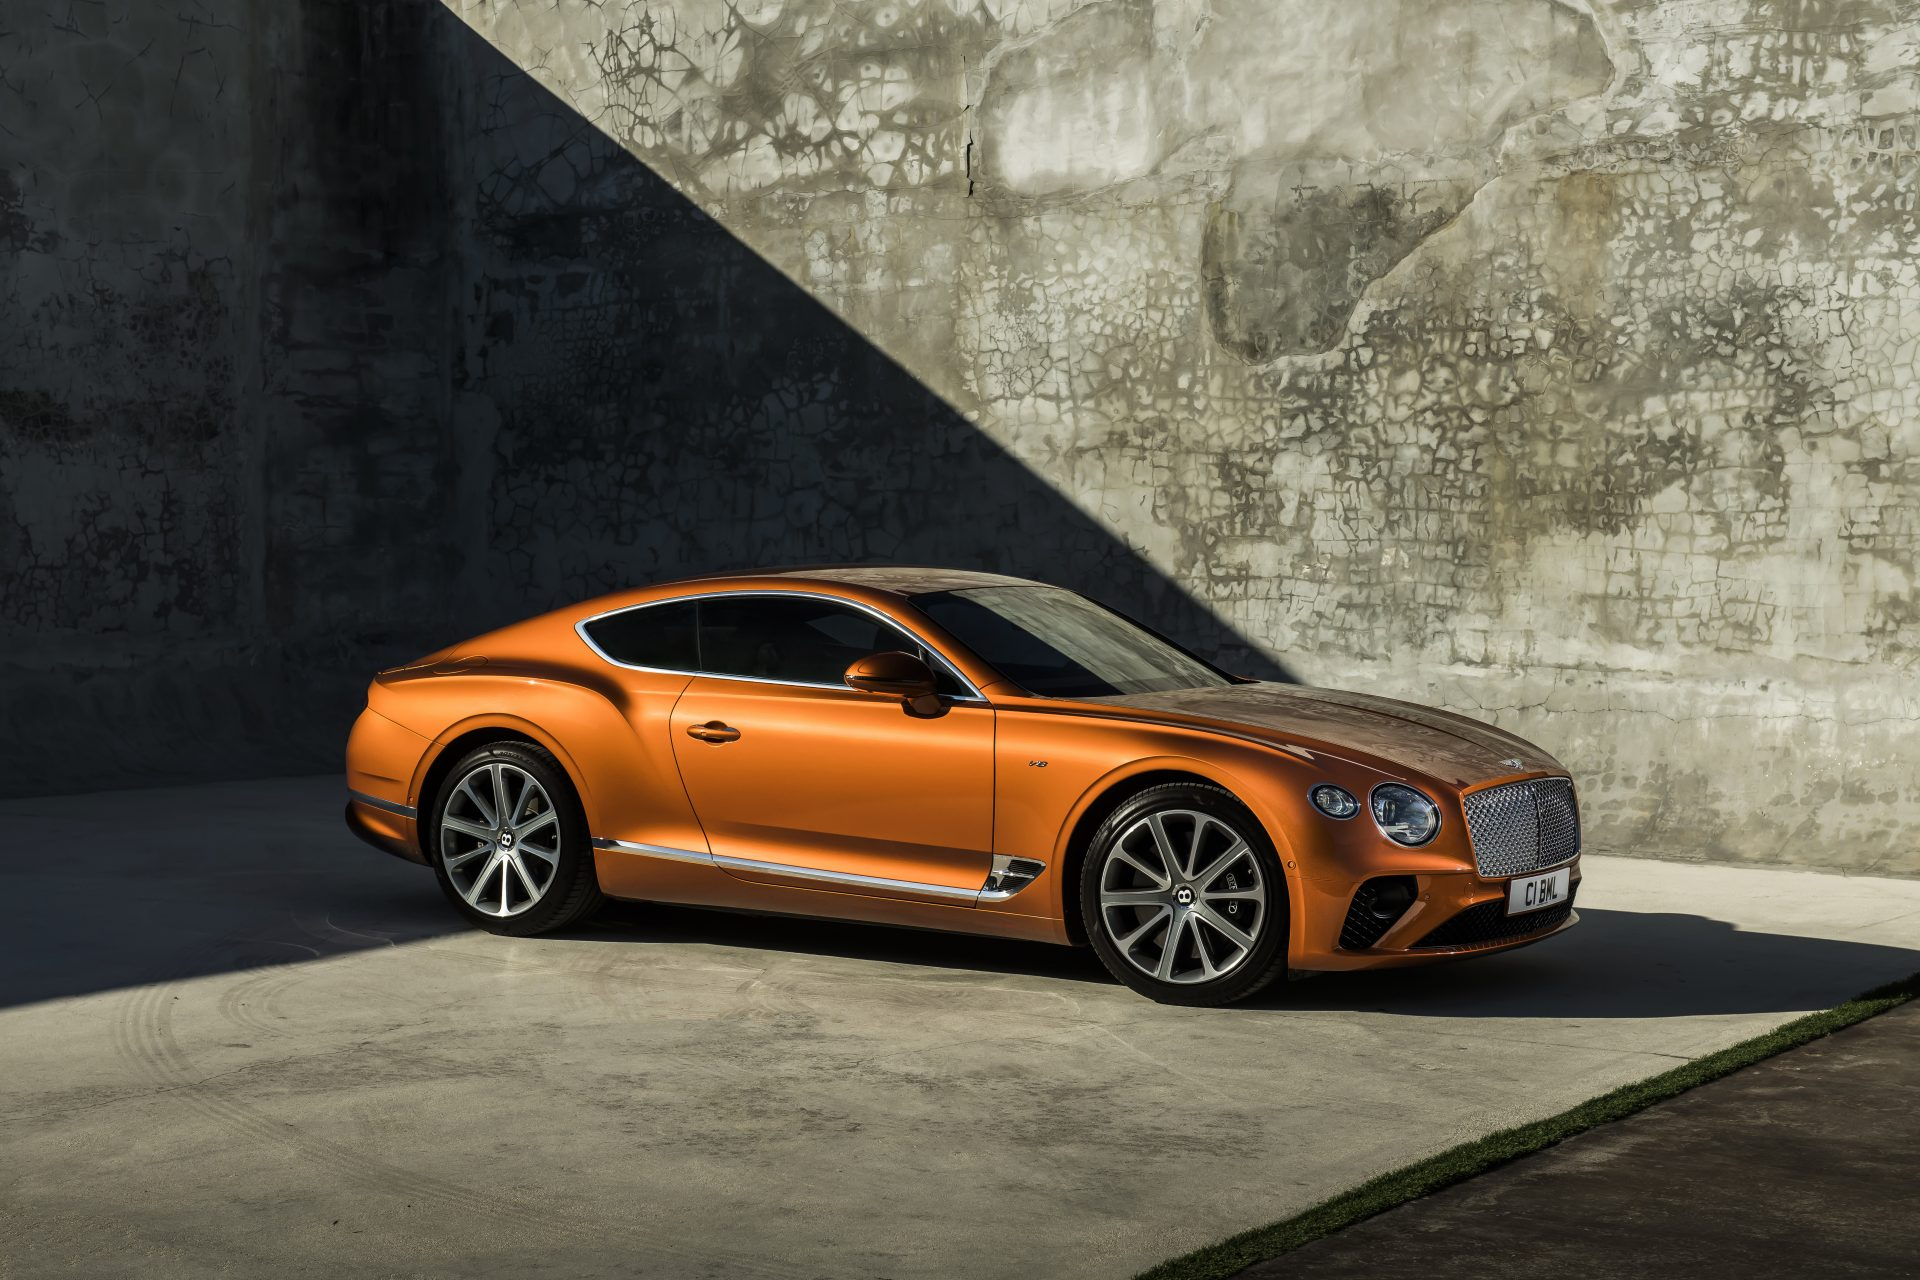 A Bentley Continental was the most expensive vehicle recovered by Vodafone Automotive during 2020.